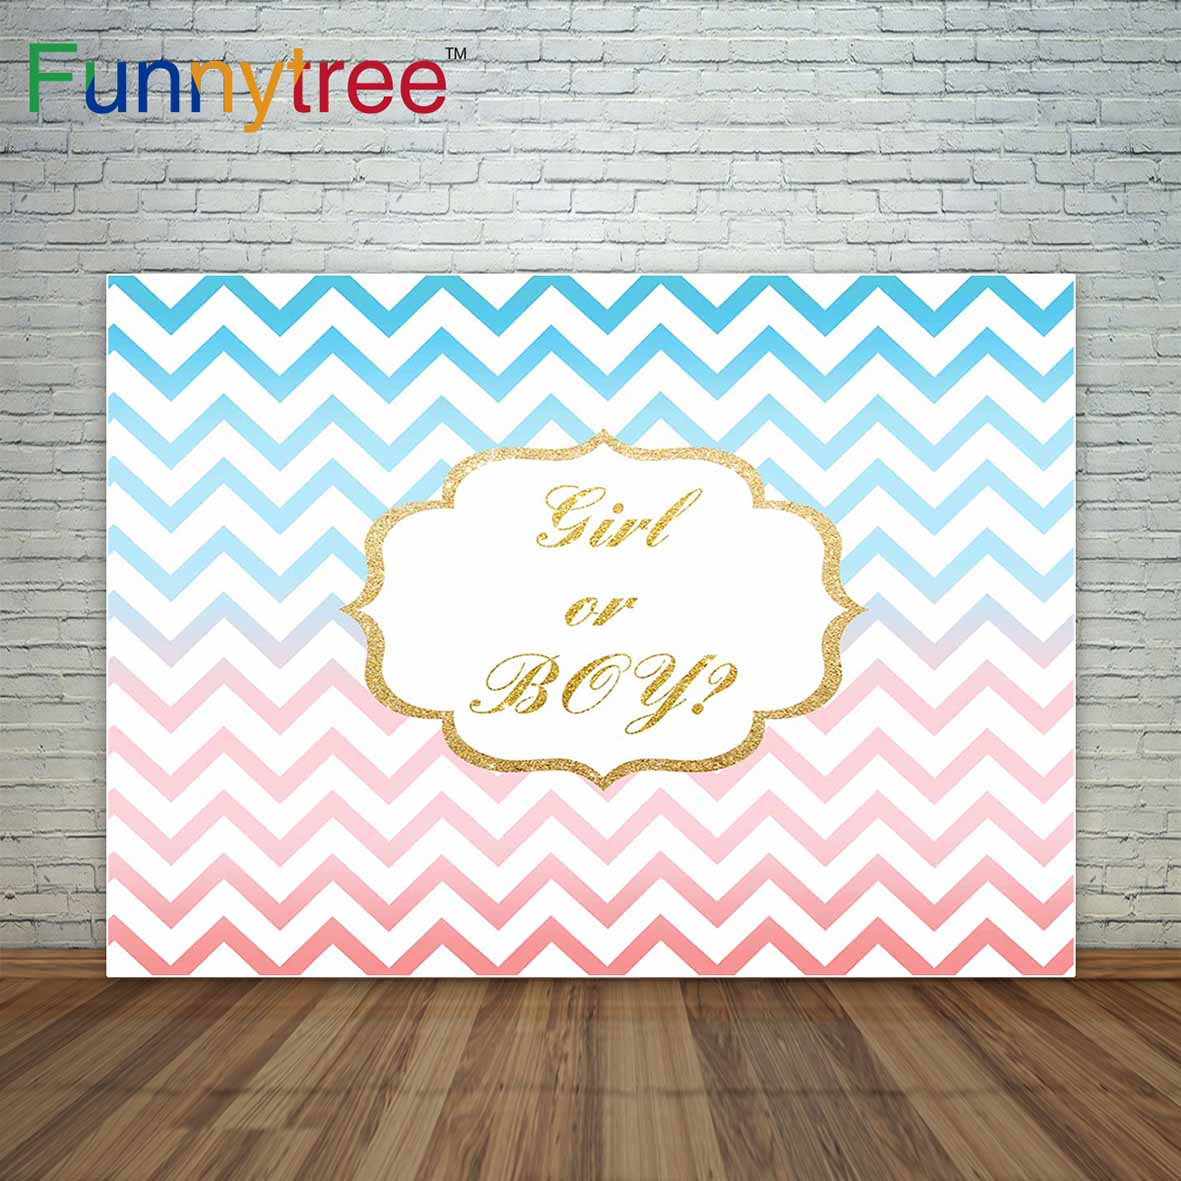 Baby Shower Reveal Party: Pastel Pink And Blue Chevron Stripes Gold Frame Baby